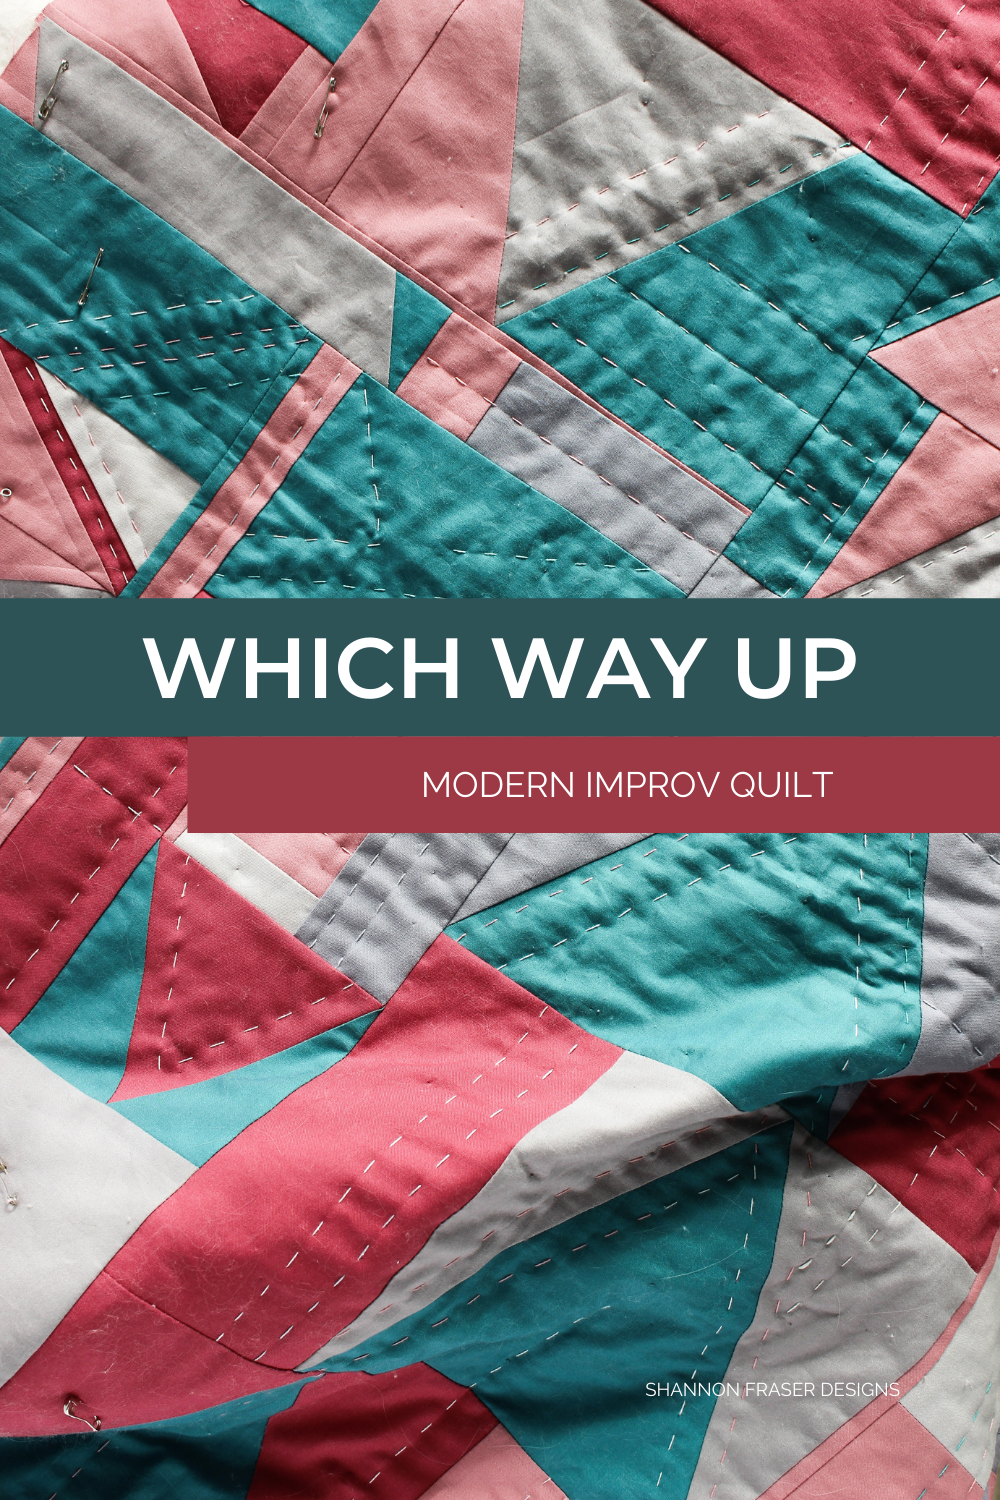 Which Way Up - a modern improv quilt entirely hand quilted using 4 different thread weights 12wt, 28wt, Aurifloss and pearl cotton in size 8 | Shannon Fraser Designs #handquitled